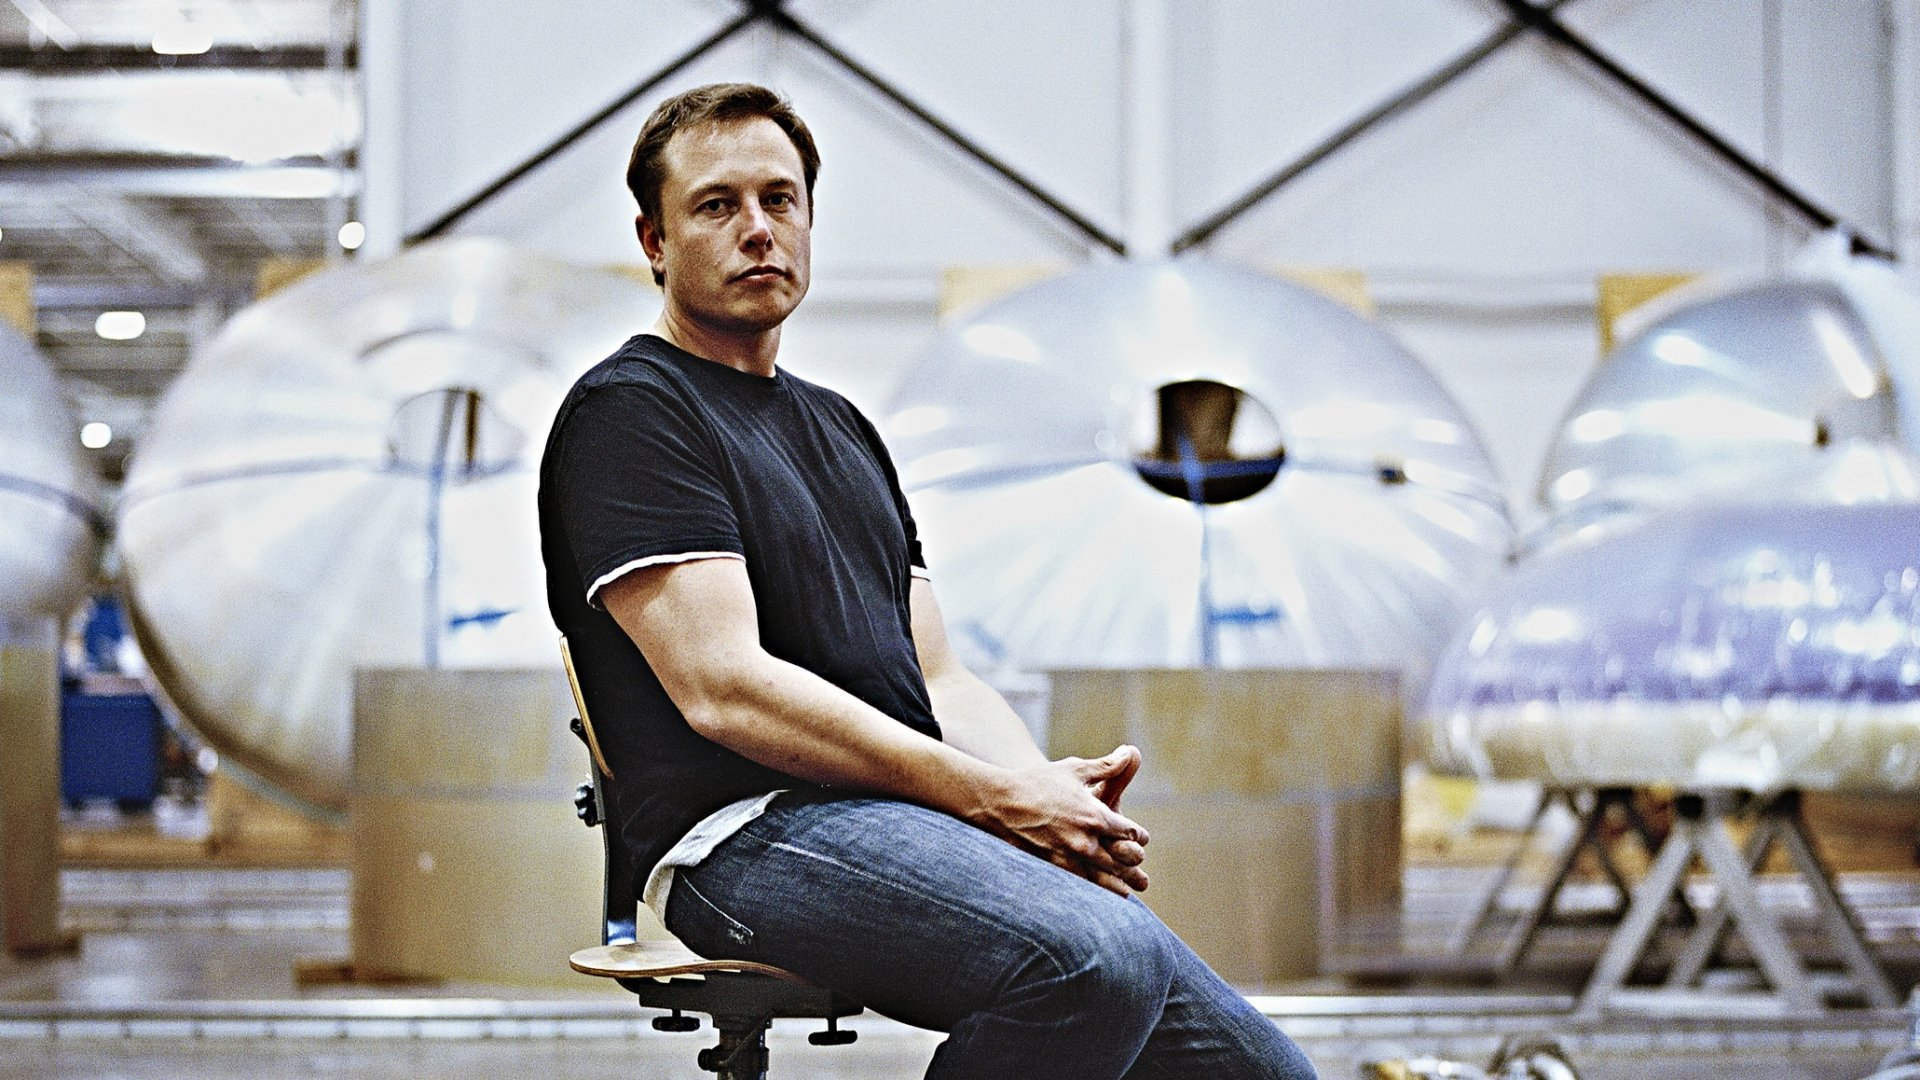 3 HD Elon Musk Wallpapers 1920x1080